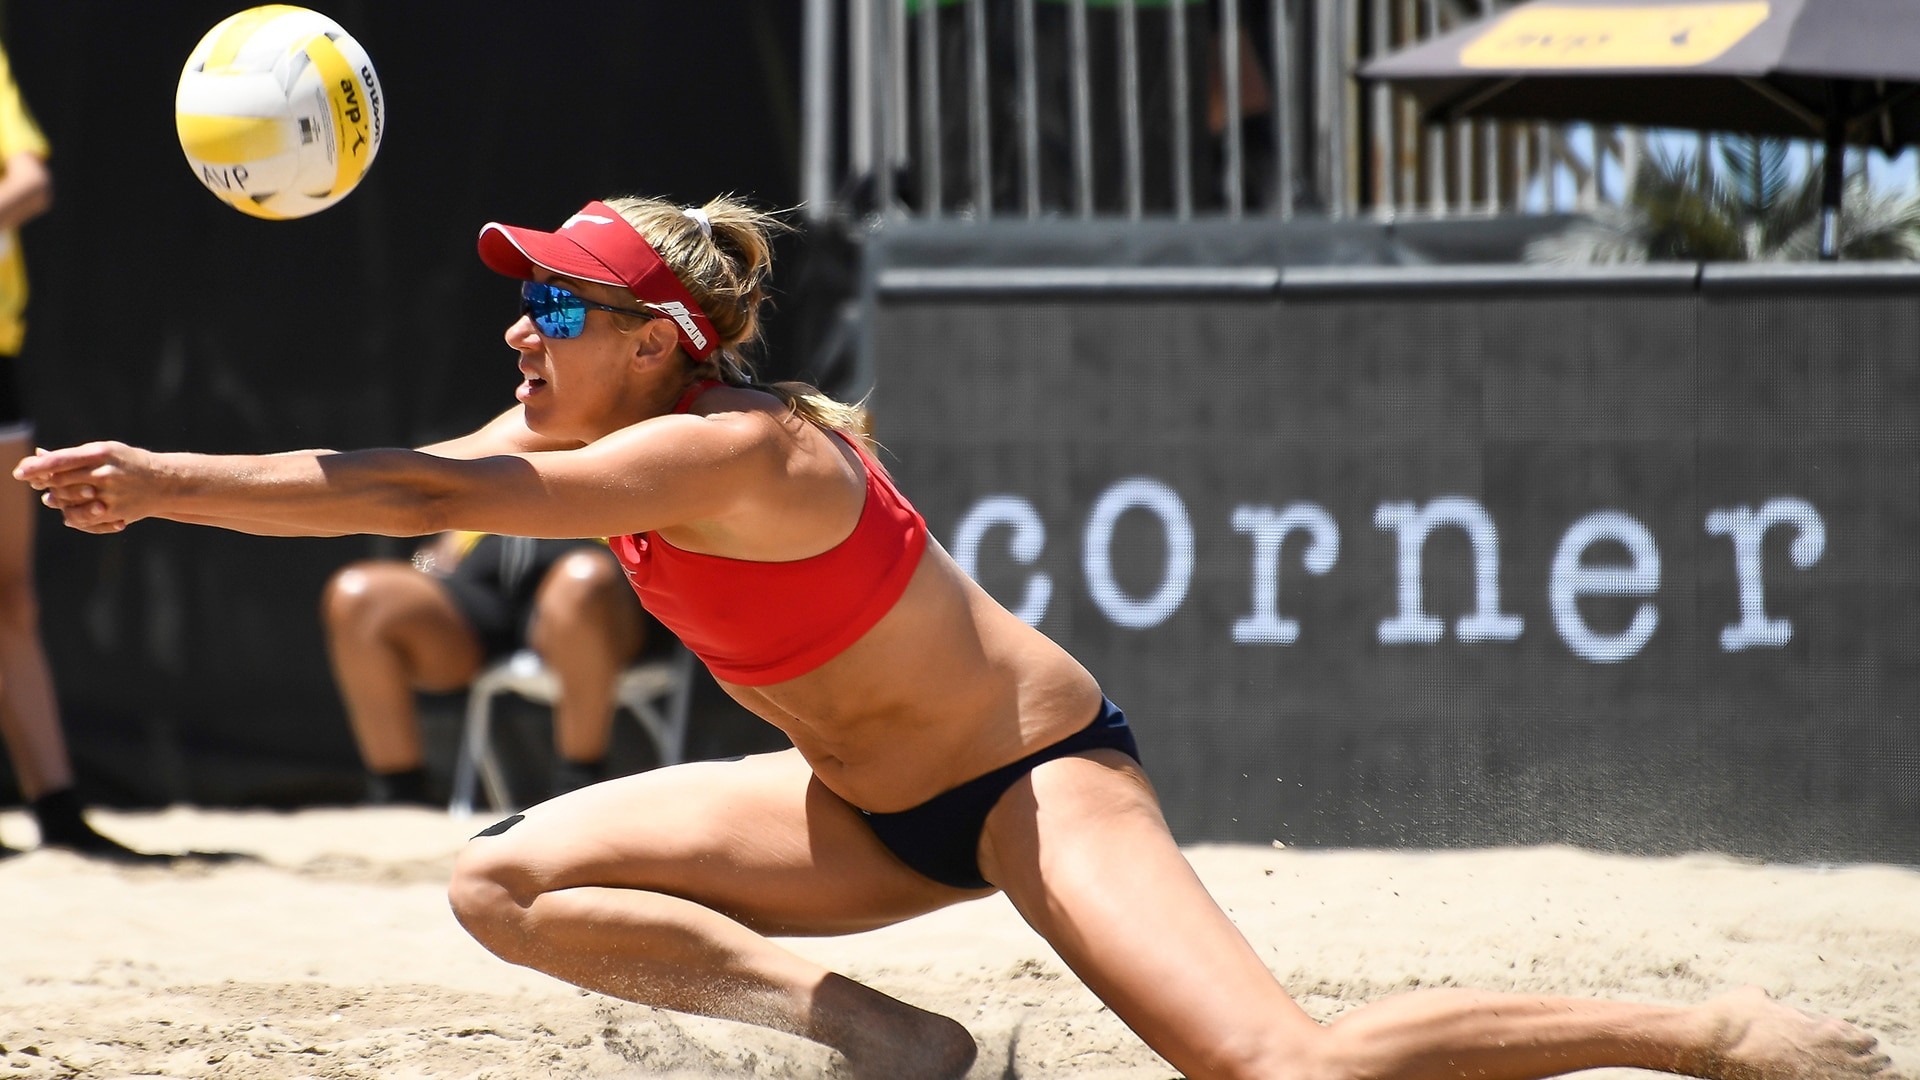 April Ross returns a shot in a match with Terese Cannon and Kelly Reeves during the 2019 AVP...